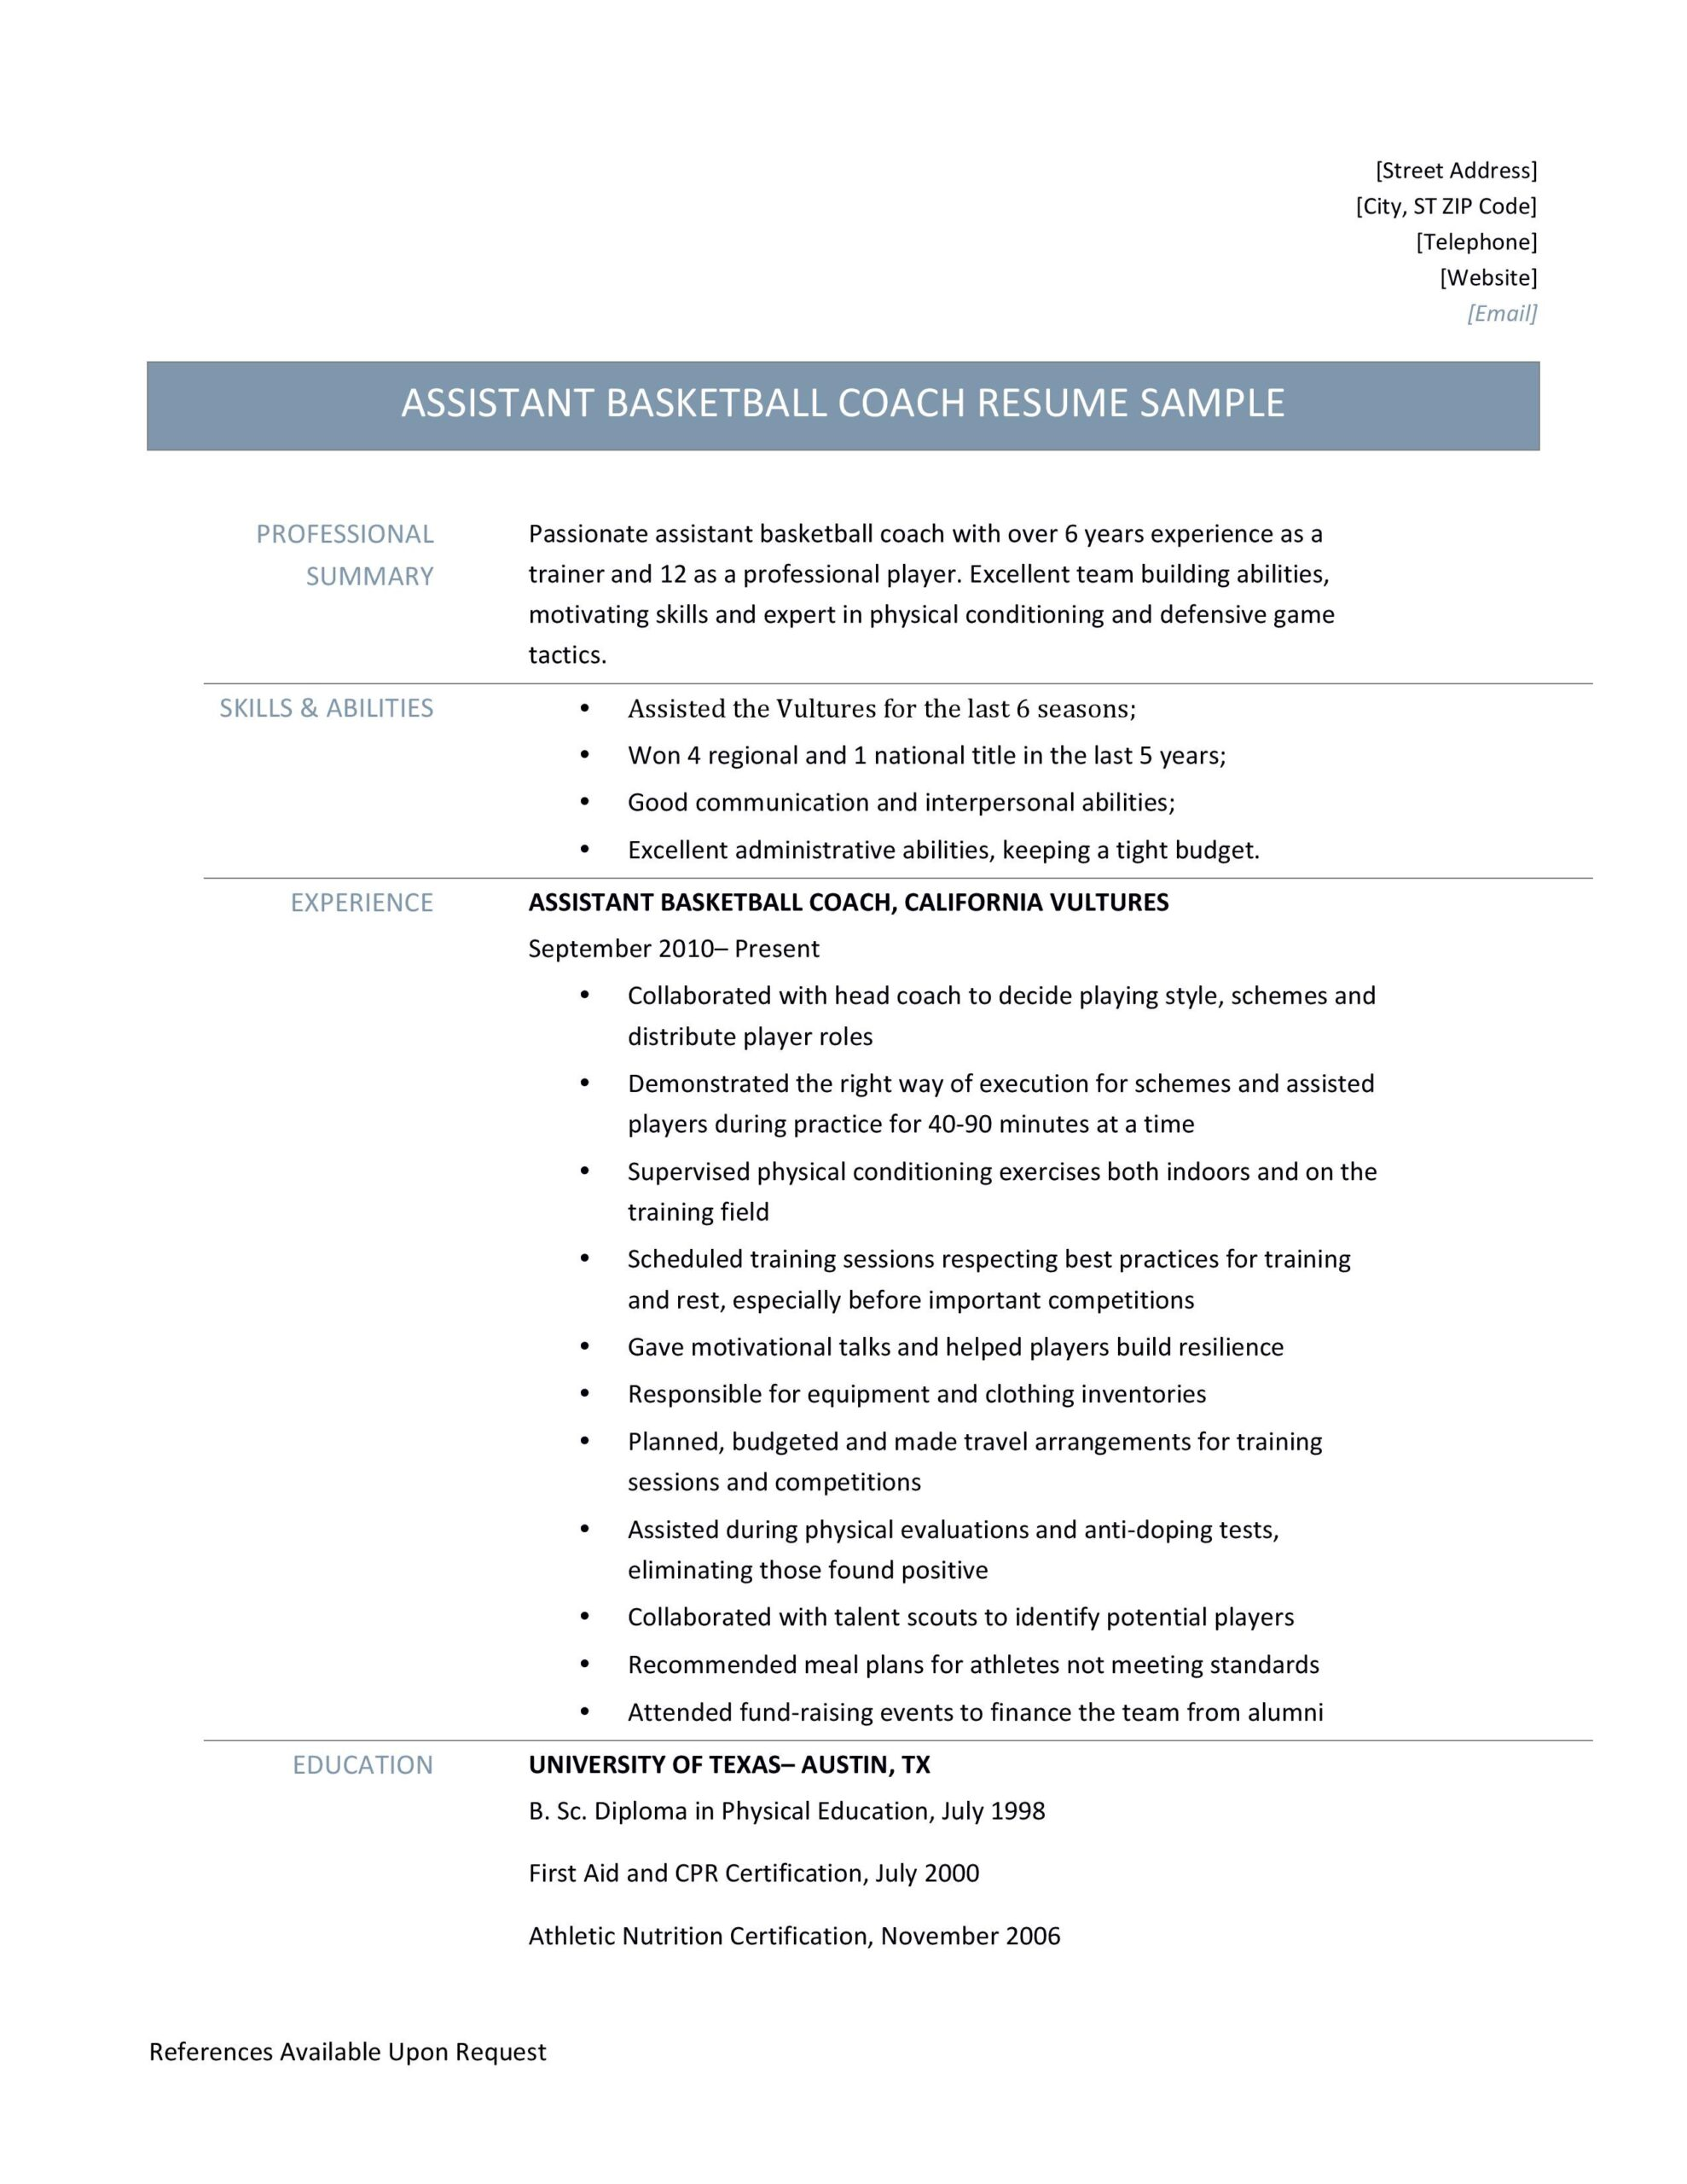 assistant basketball coach resume samples and job description by builders medium coaching Resume Coaching Resume Template